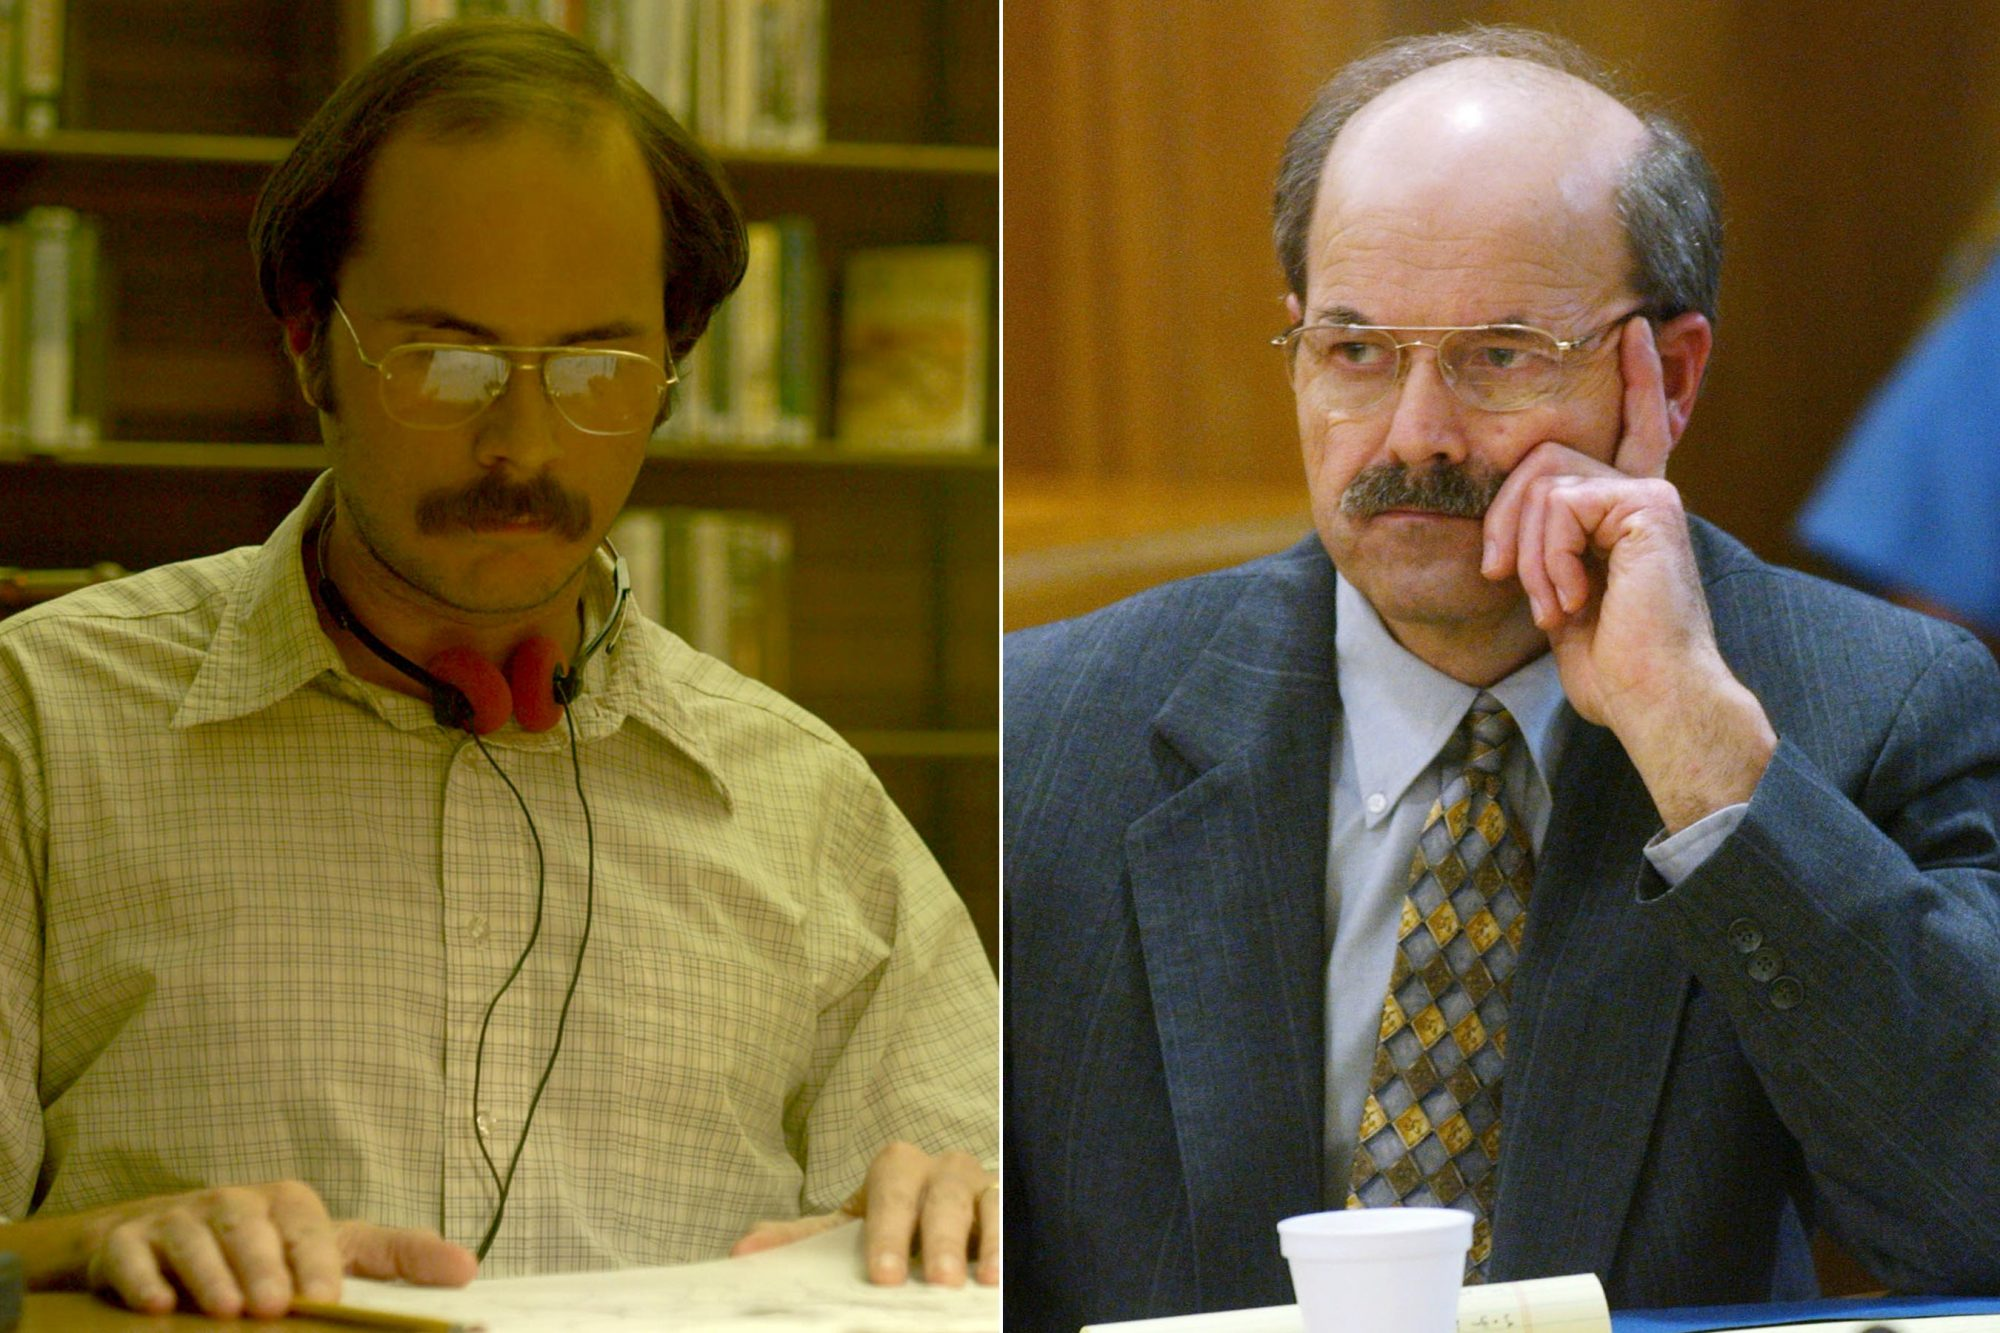 Mindhunter Season 2 (screen grab) CR: Netflix WICHITA, KS - AUGUST 17: Confessed serial killer Dennis Rader, known as BTK, listens to testimony in the sentening phase of his trial in Sedgwick County Court August 17, 2005 in Wichita, Kansas. Rader, of Park City, Kansas, has pleaded guilty to 10 counts of murder for killings which spanned three decades. (Photo by Bo Rader-Pool/Getty Images)